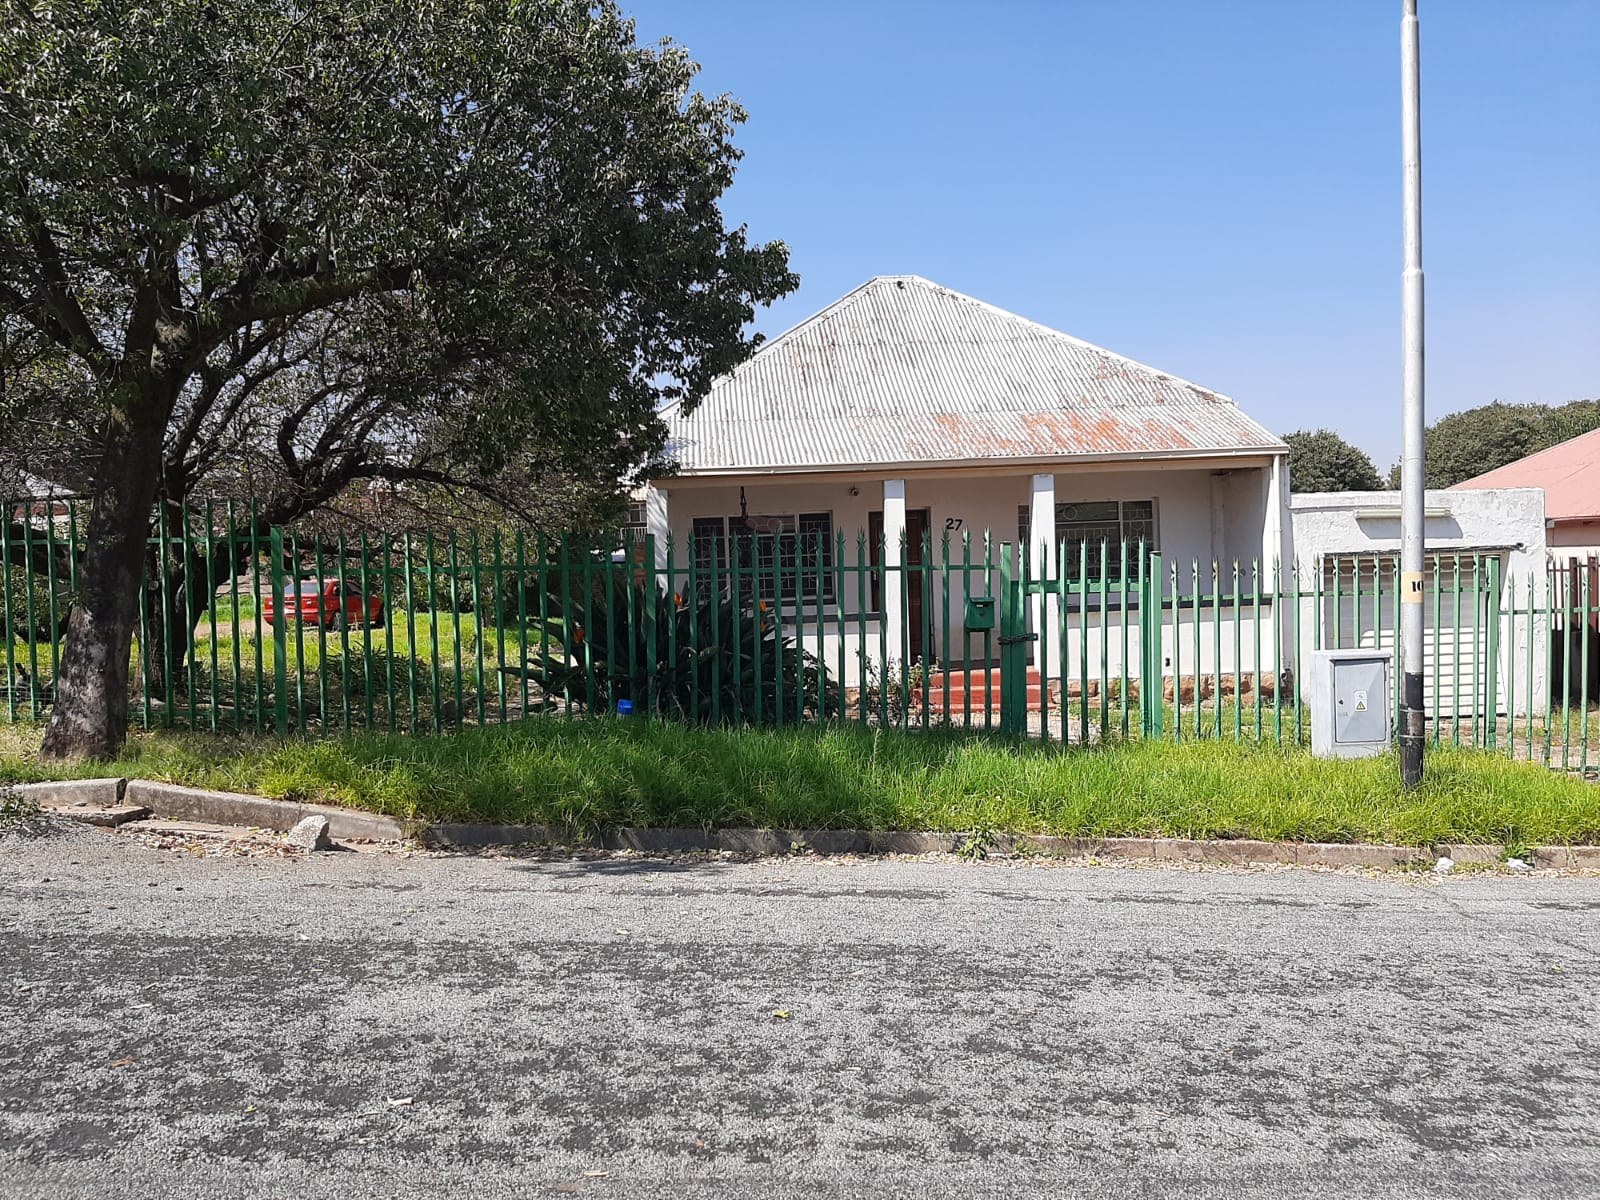 3 BEDROOM HOUSE - ALBERTON NORTH - GAUTENG